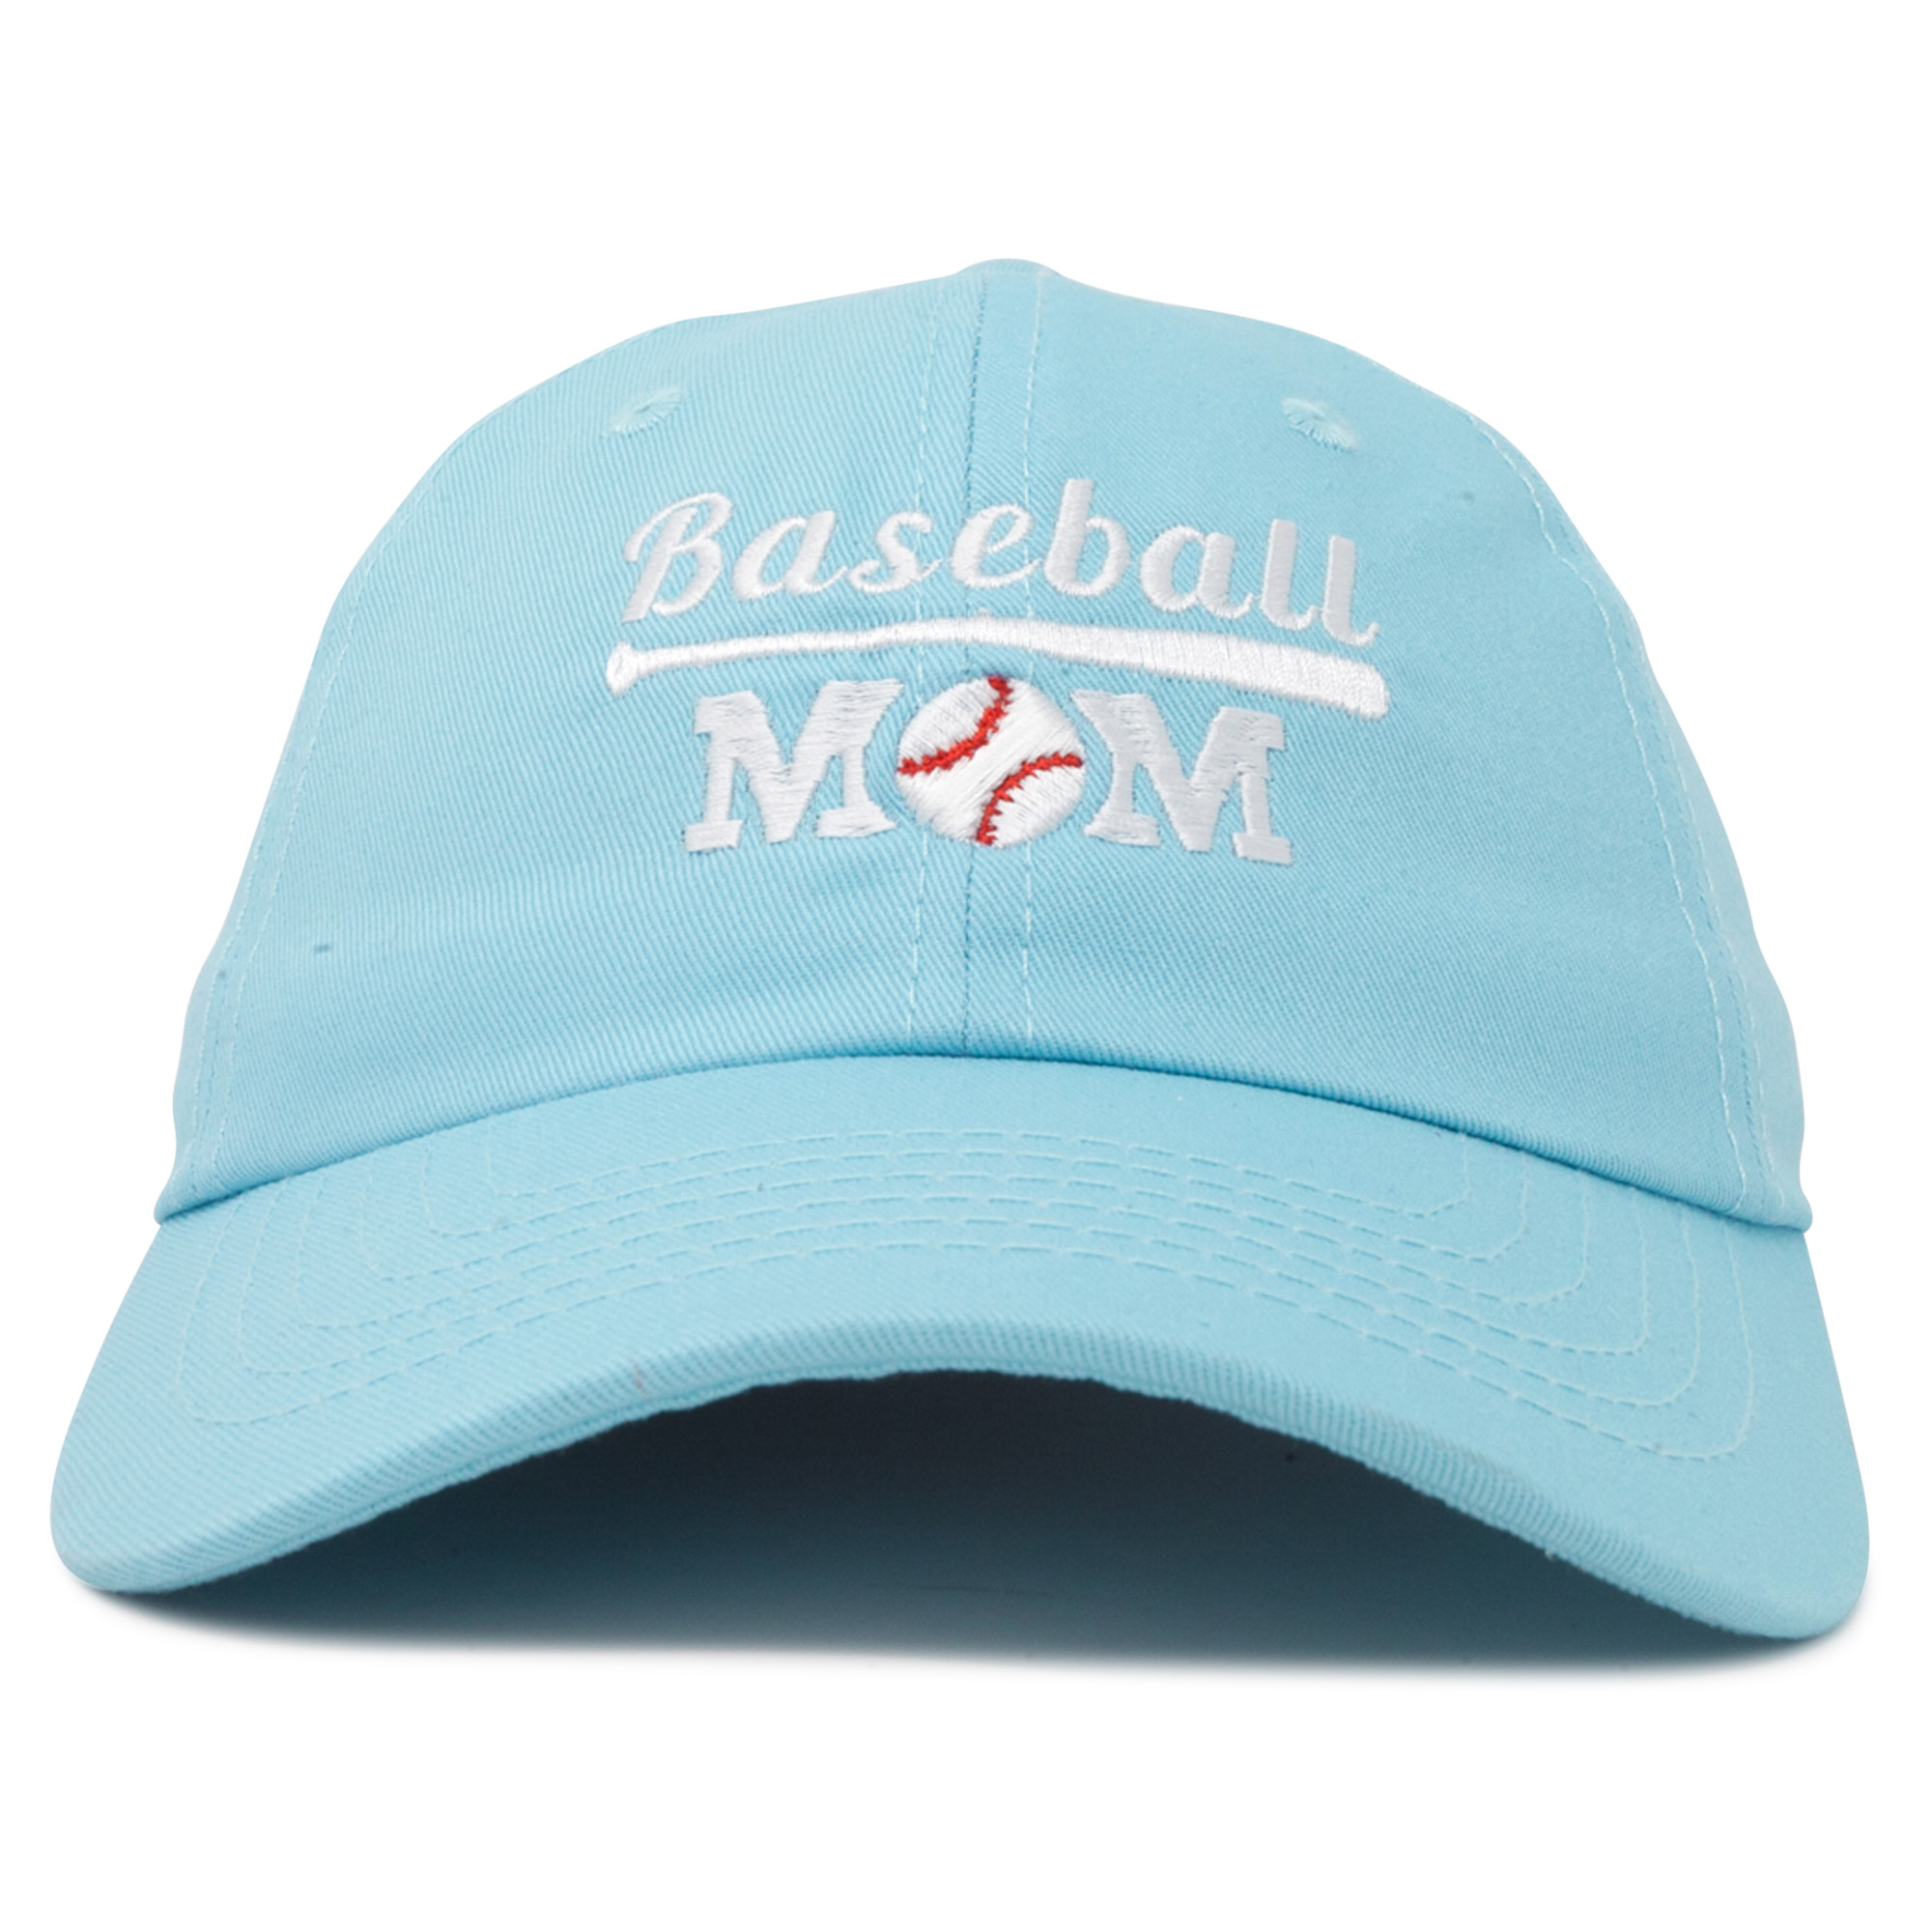 2eaf5e7154ef9 DALIX - DALIX Baseball Mom Women's Ball Cap Dad Hat for Women in Kelly  Green - Walmart.com